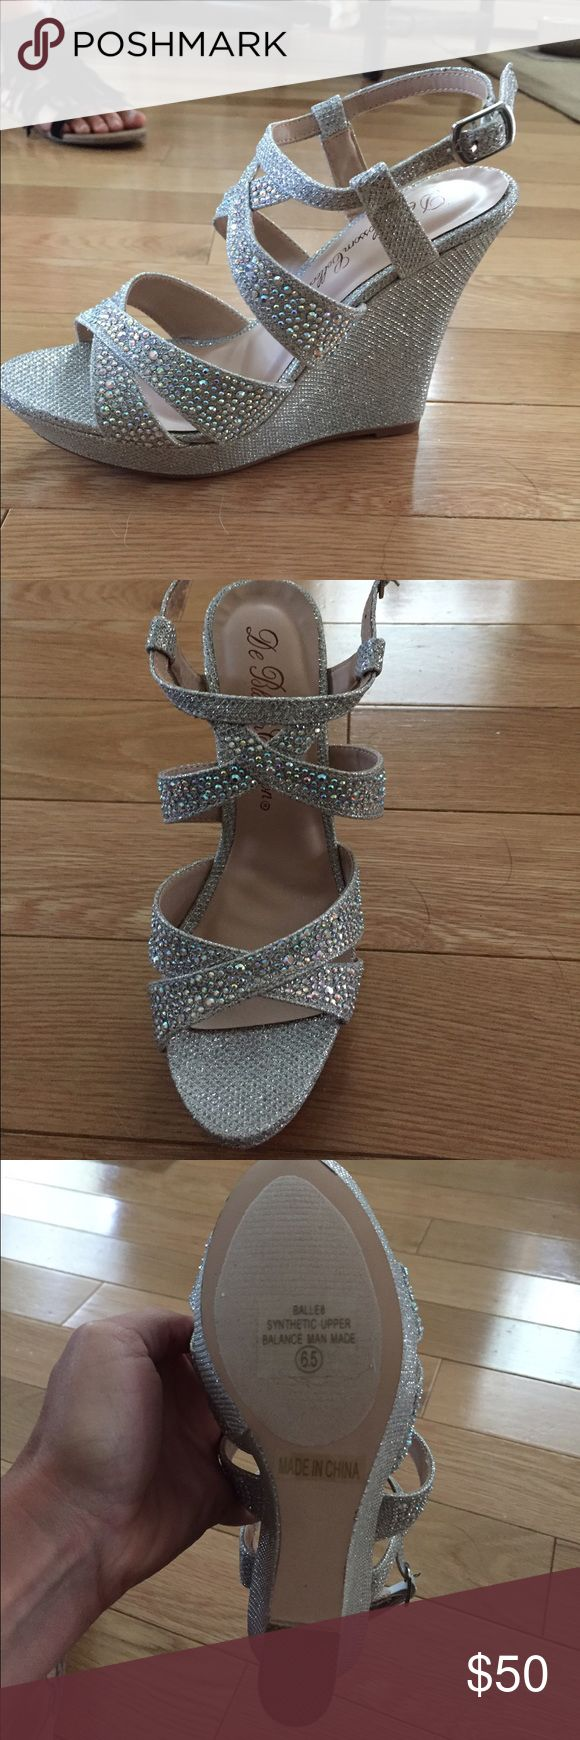 De Blossom Collection Silver Wedge Sandal David's Bridal-De Blossom Collection Beautiful silver wedge sandal. Brand new, never worn, with box! We ordered a bunch of these for the bridesmaids in my sisters wedding and forgot to return within the 14 day period....I have a 6.5 and 7.5 for sale... they run small and narrow! Im usually a 6 and ended up wearing a 7. Super comfortable for a wedding! Danced all night in these! Davids Bridal  Shoes Wedges